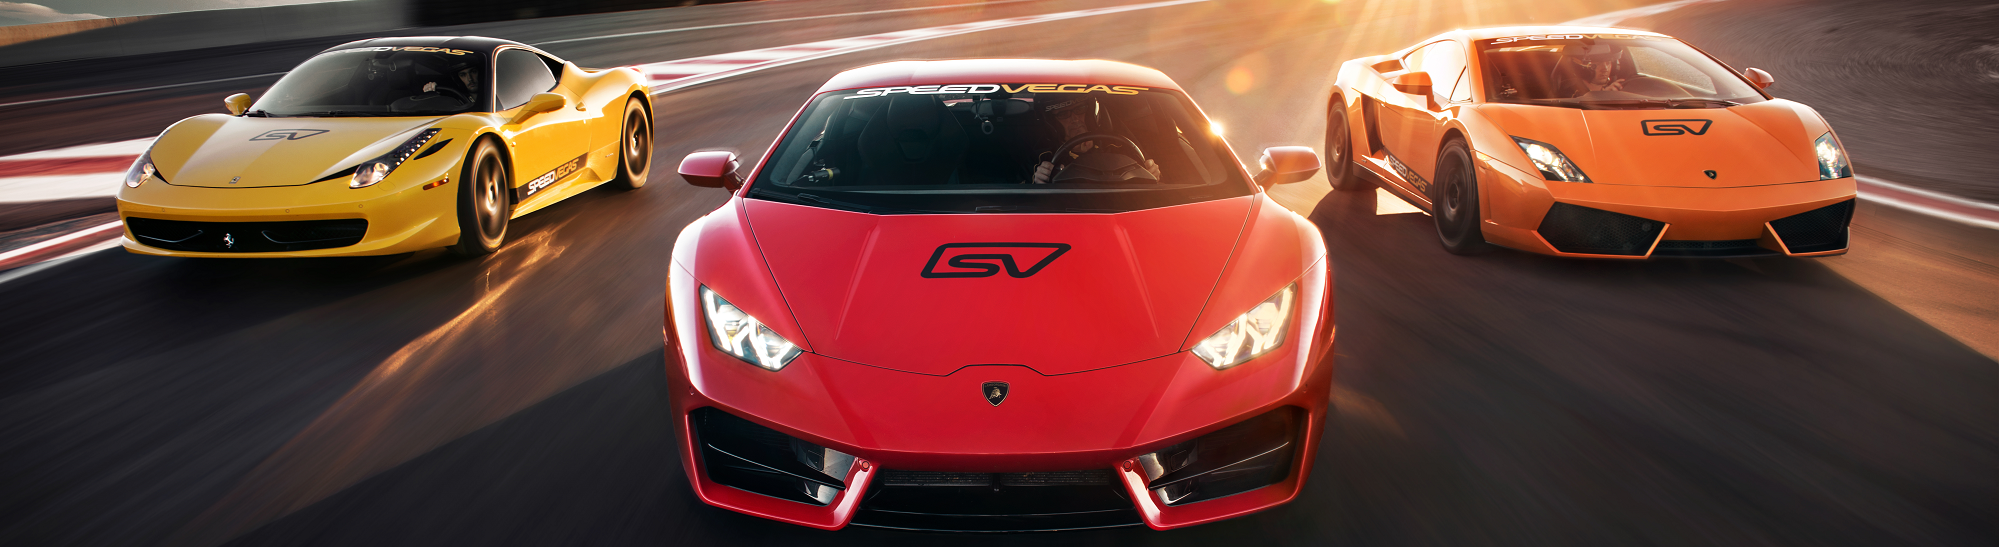 With the Happy Hour of Power, drive unlimited laps for one hour in up to eight different cars from our world-renowned collection of top muscle cars and exotic supercars, including models by Lamborghini, Ferrari, Porsche, Corvette, Shelby and more.